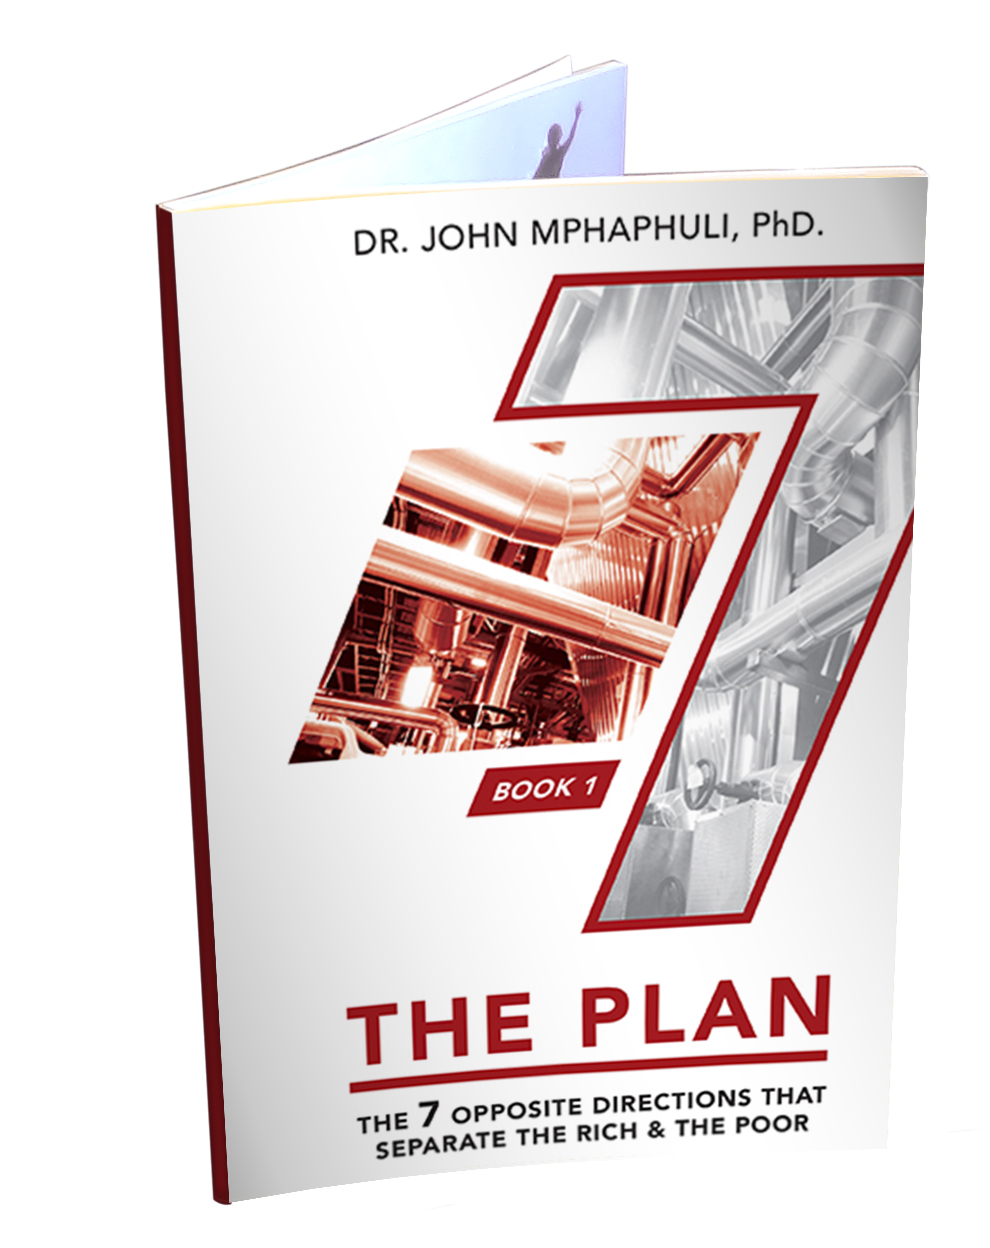 The Plan Book 1